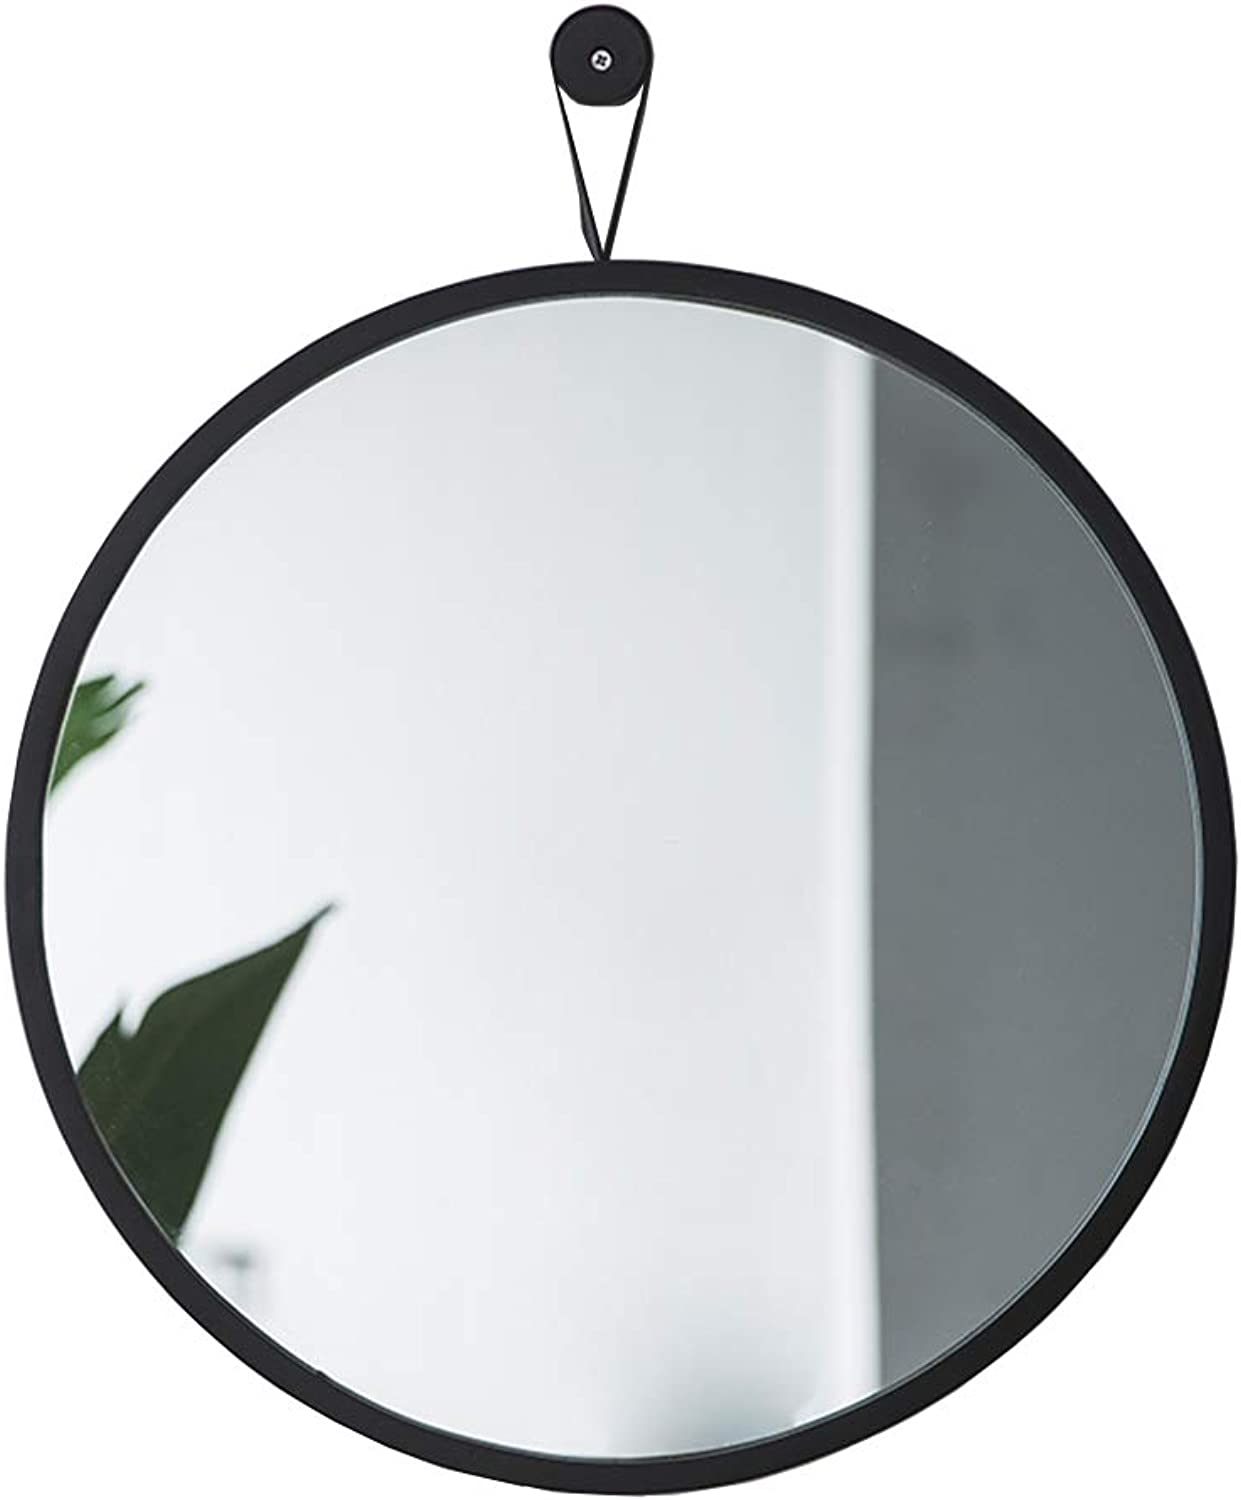 Round Decorative Bathroom Mirrors with Hanging Loop,Wall Hanging Mirror,Creative Makeup Shaving Mirrors